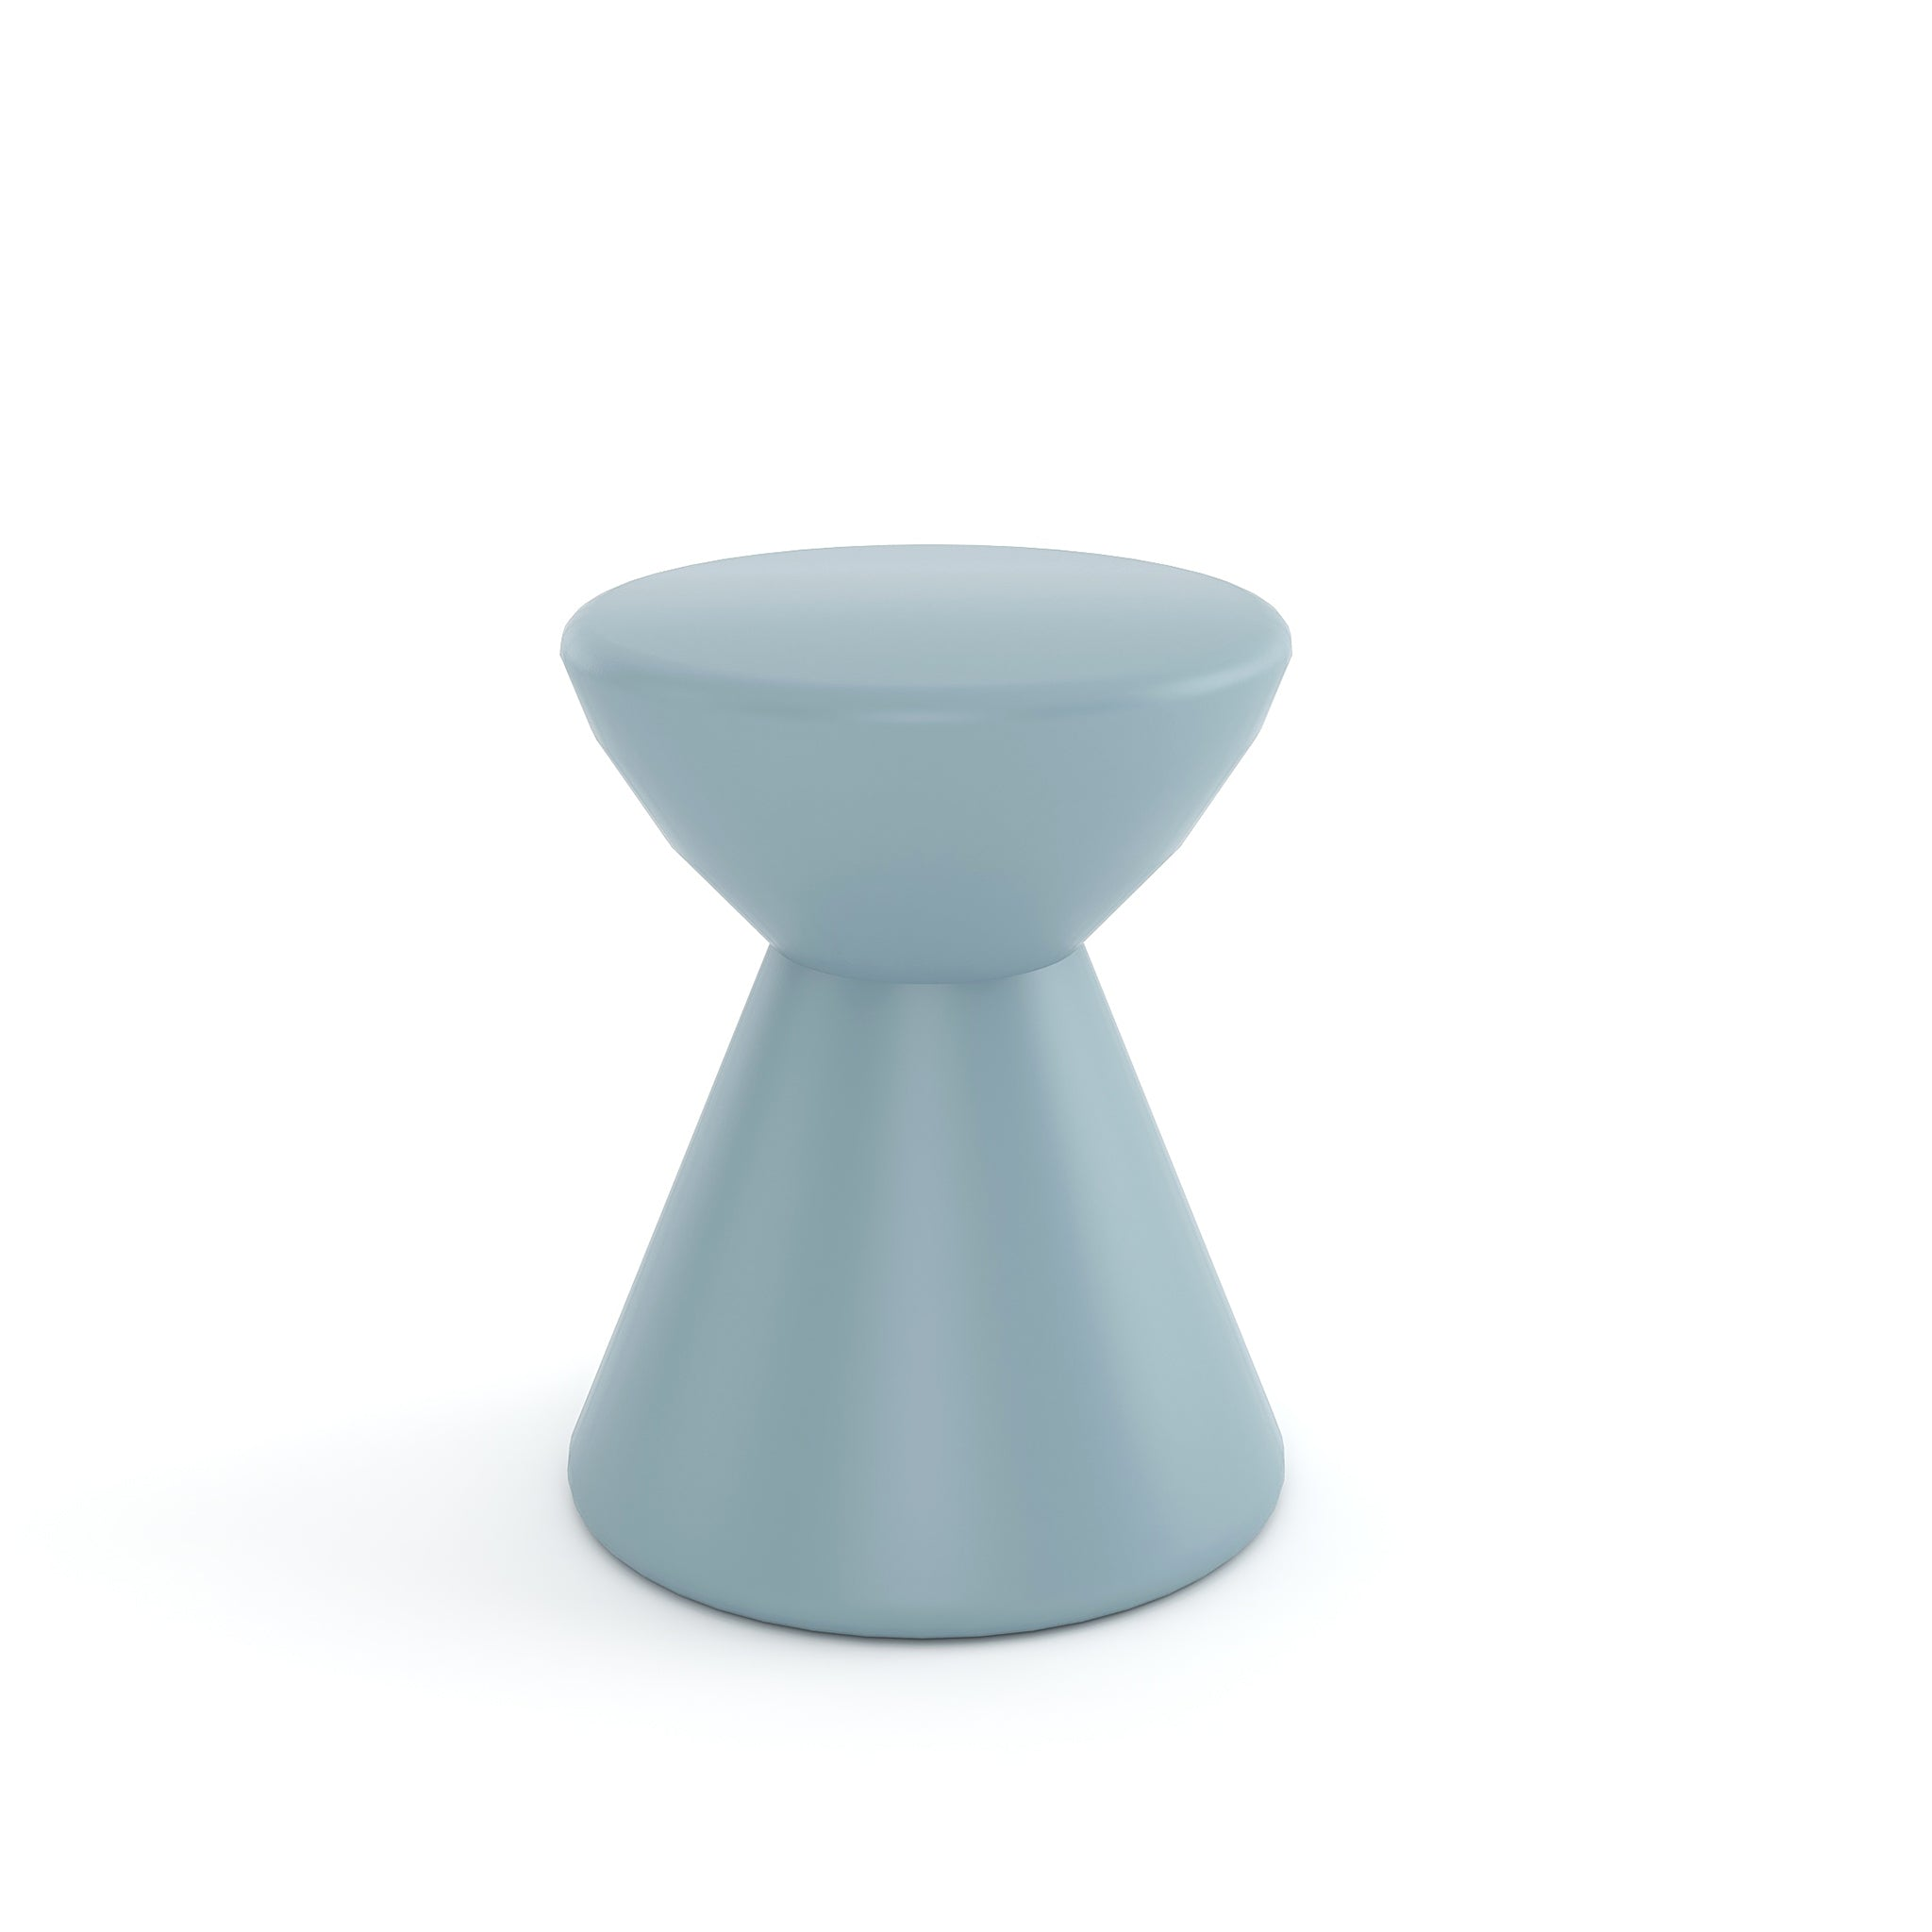 Roto Stool by m.a.d - Steelcase